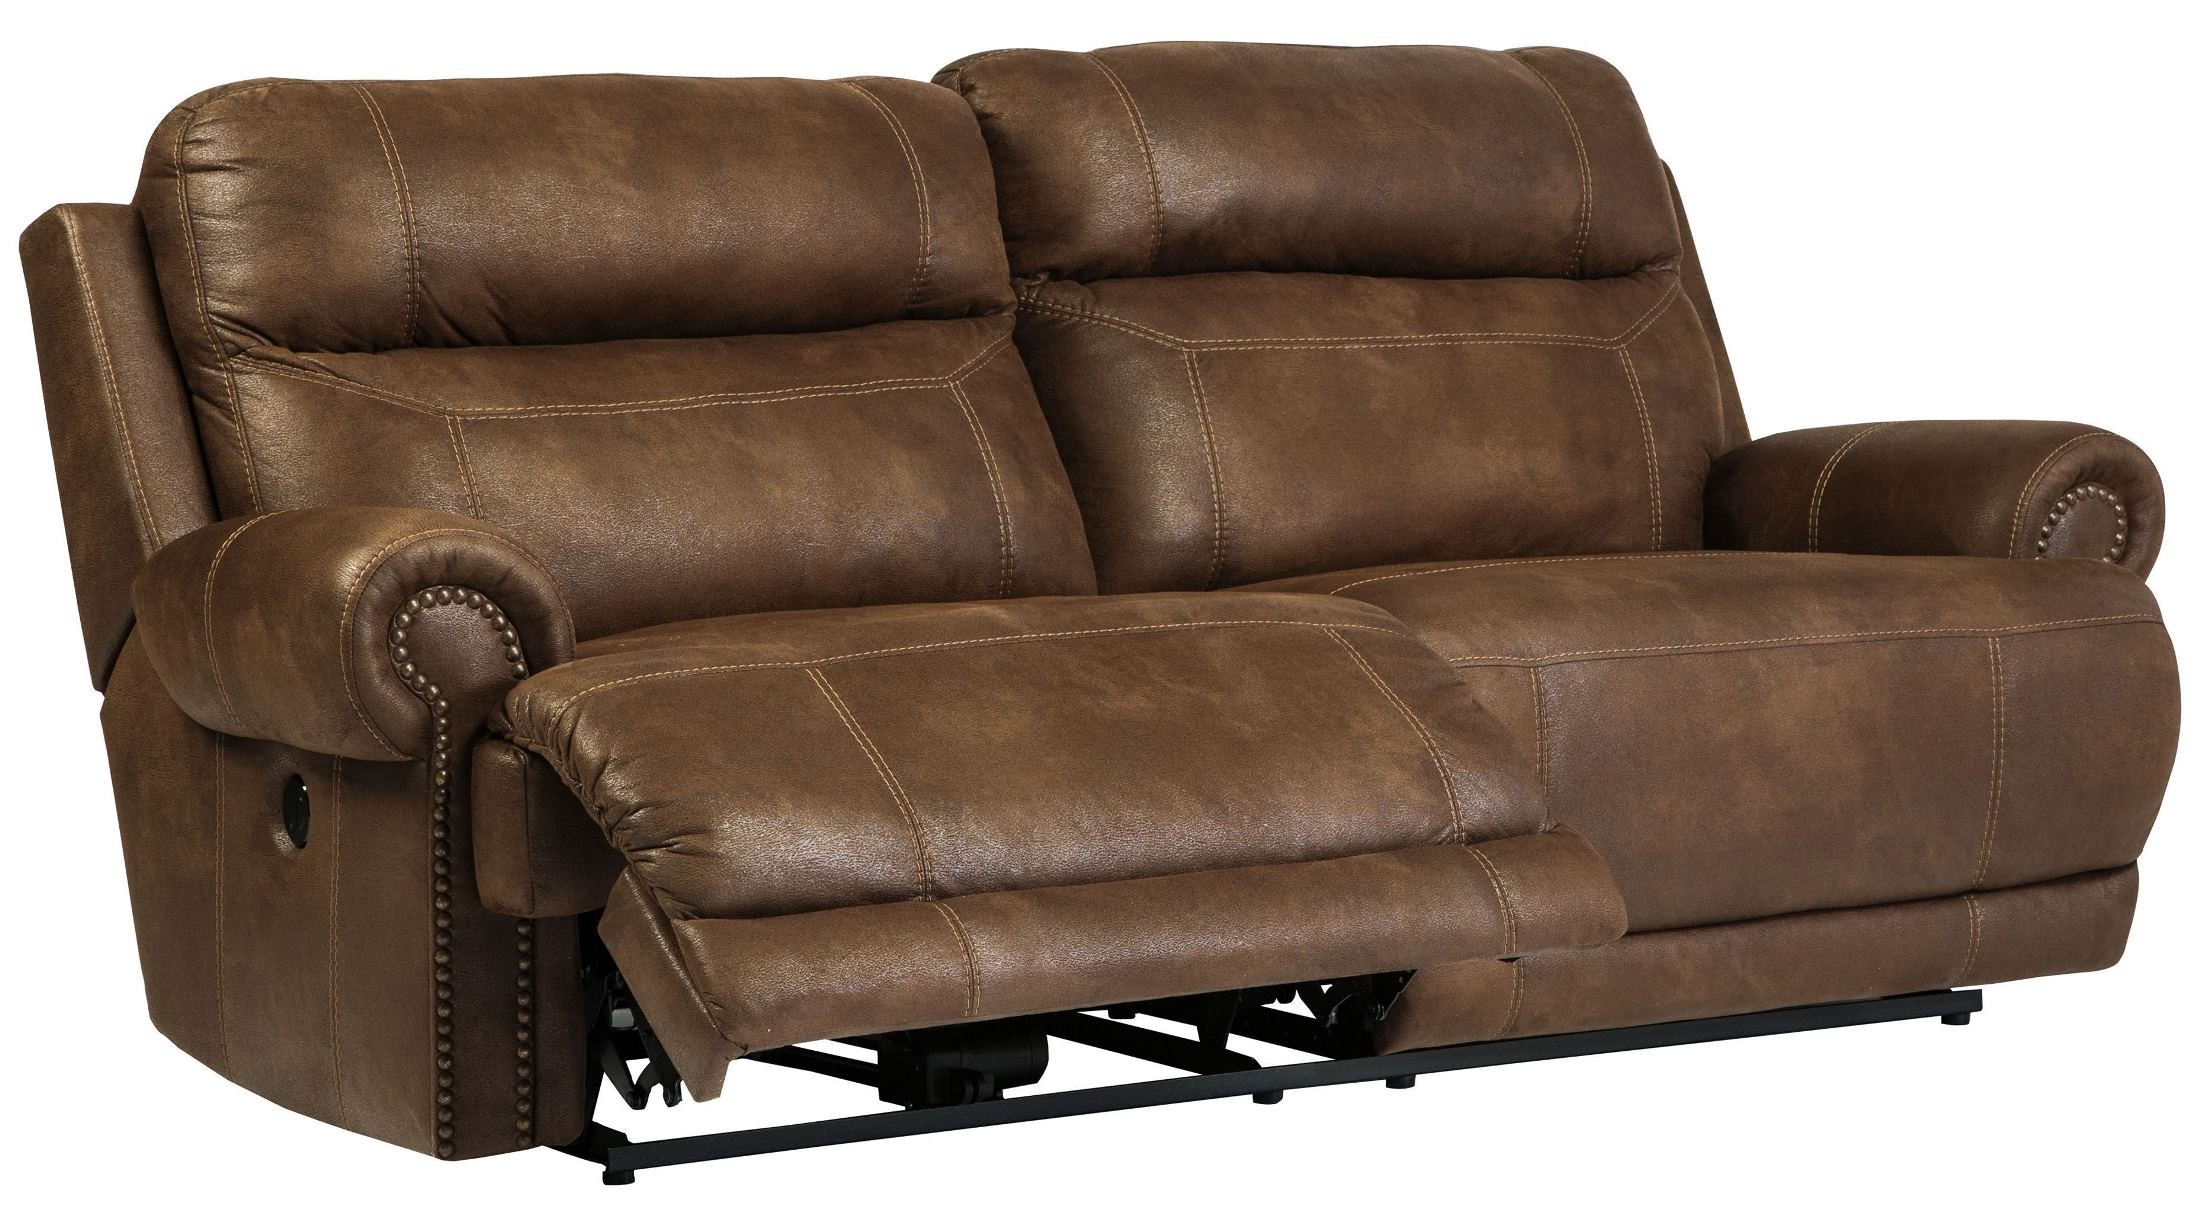 Austere Brown Power Reclining Sofa  sc 1 st  Coleman Furniture & Austere Brown Power Reclining Sofa from Ashley (3840047) | Coleman ... islam-shia.org